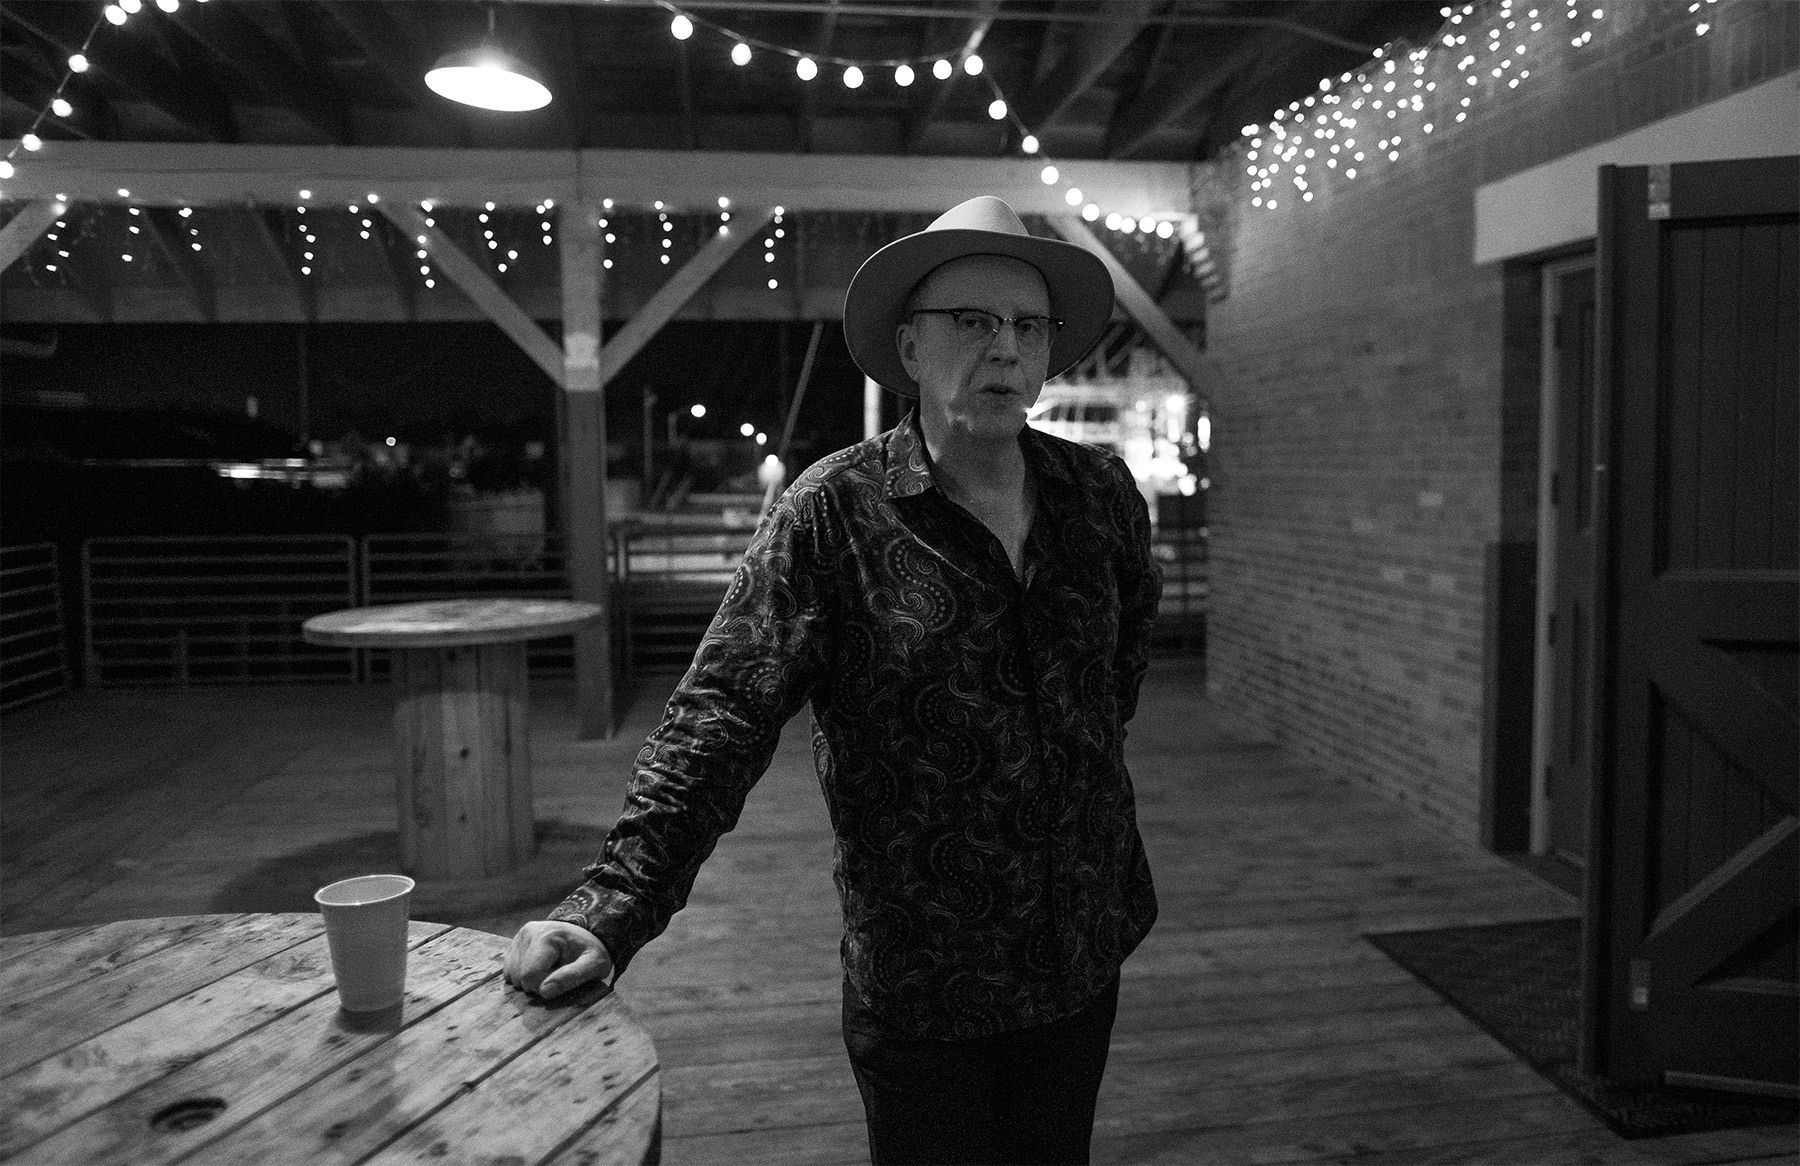 Webb Wilder relaxes outside after his performance at The Historic Myrtle Beach Train Depot on March 12, 2016. It was Webb's second appearance at the SXSE music series. Webb describes his music this way. {quote}Rock 'n' roll, from Nashville. Formed from Mississippi mud, tinged with British mod. Bruised by the blues. Baptized by Buck and Chuck. Psychiatric psycho-rootsy. Sizzling, glistening, uneasy listening.{quote}